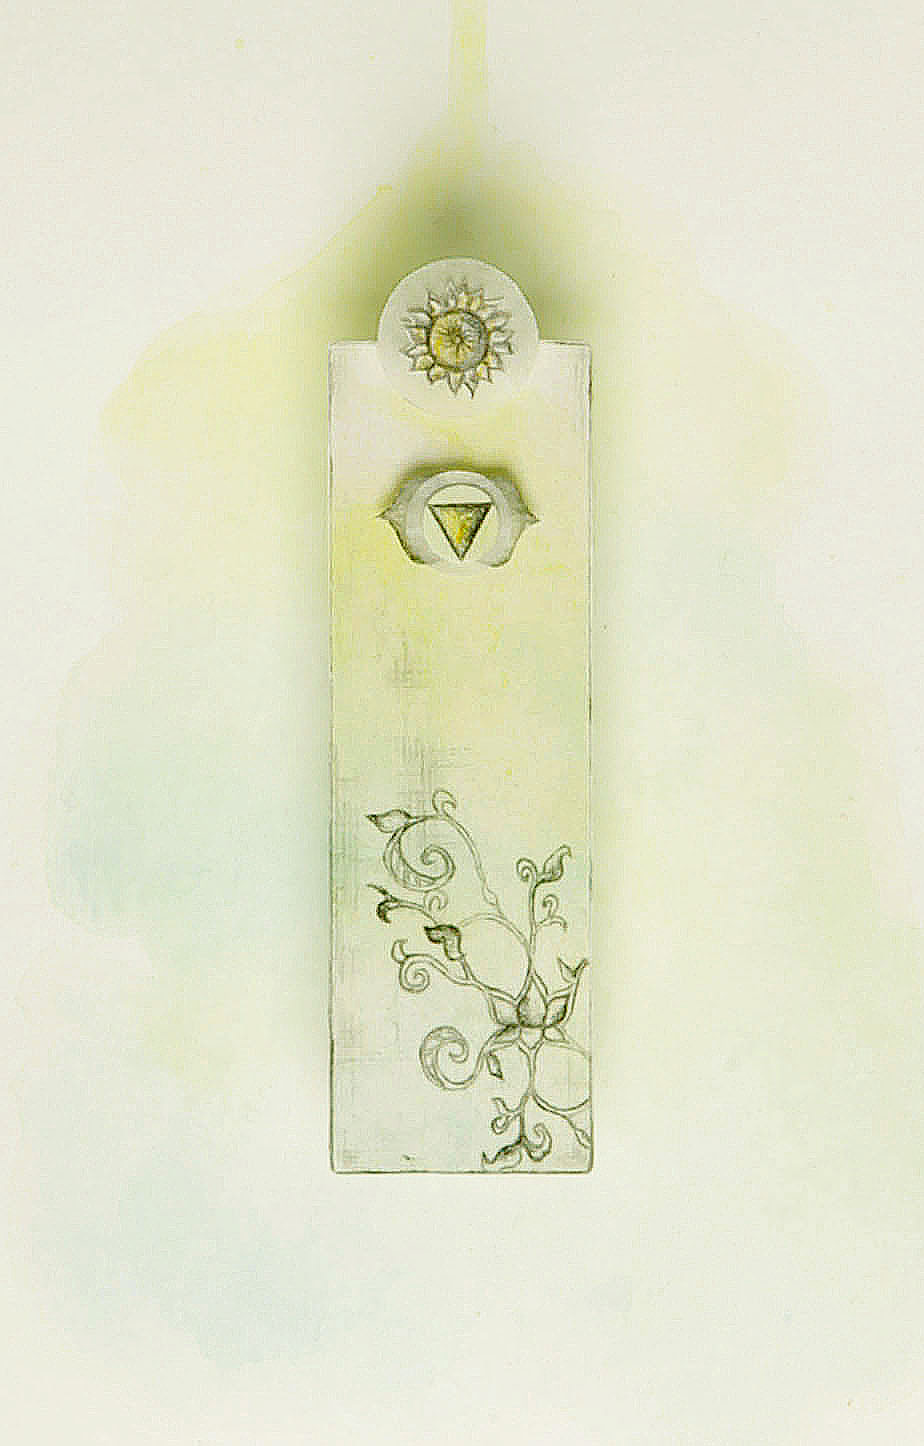 Yoga Mat with 6th and 7th Chakras_detail from tif.jpg